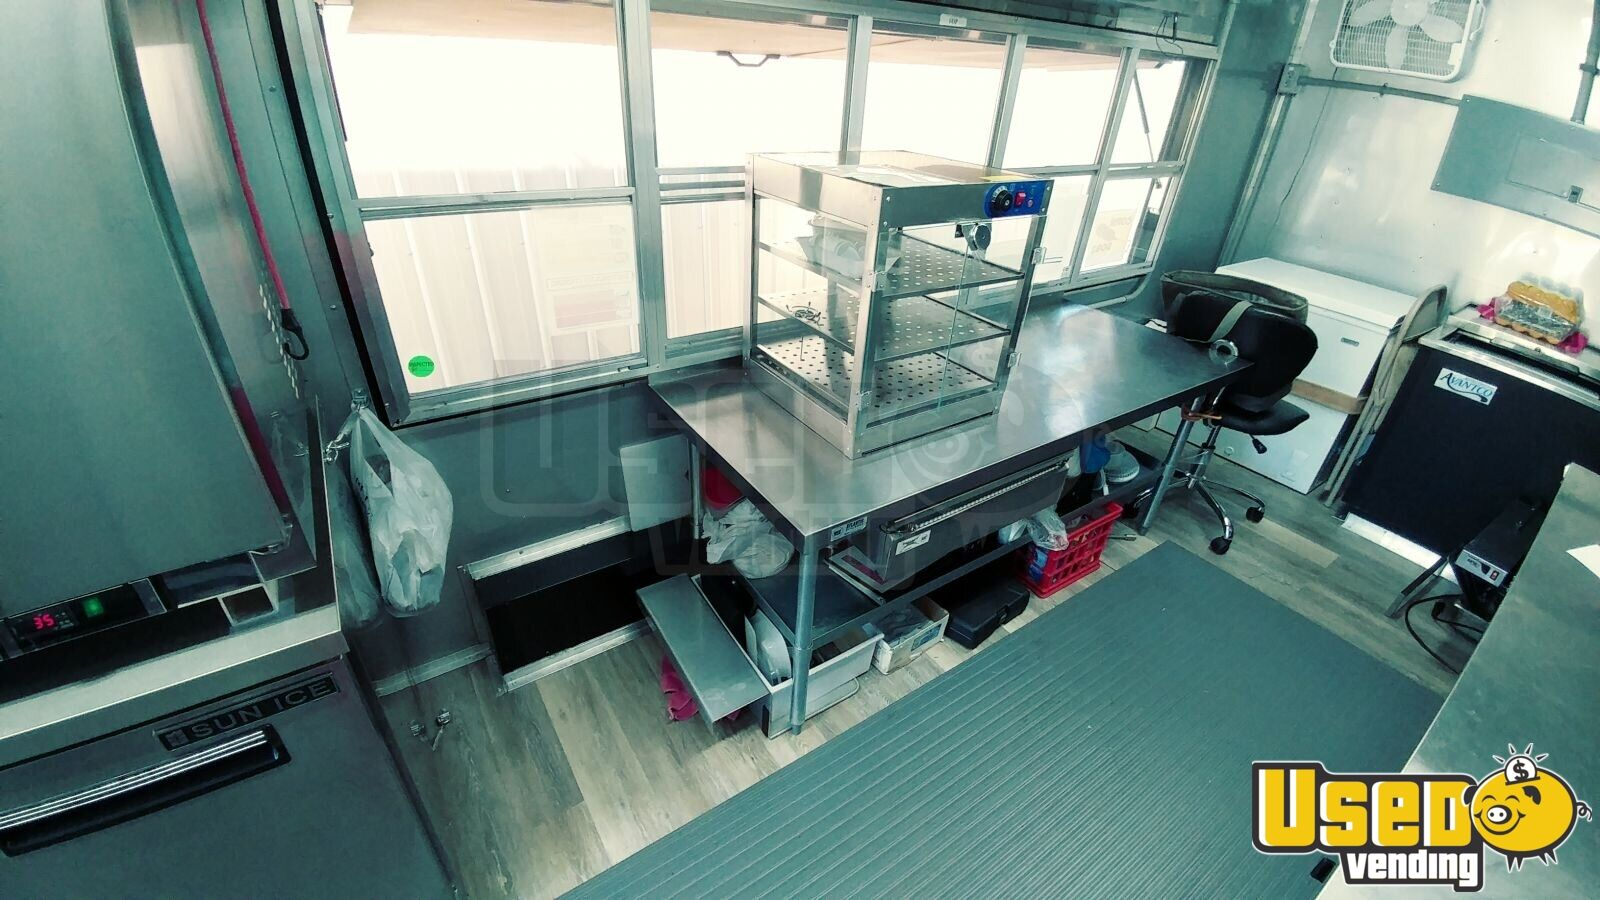 2017 Freedom Trailer All-purpose Food Trailer Fryer Maryland for Sale - 11